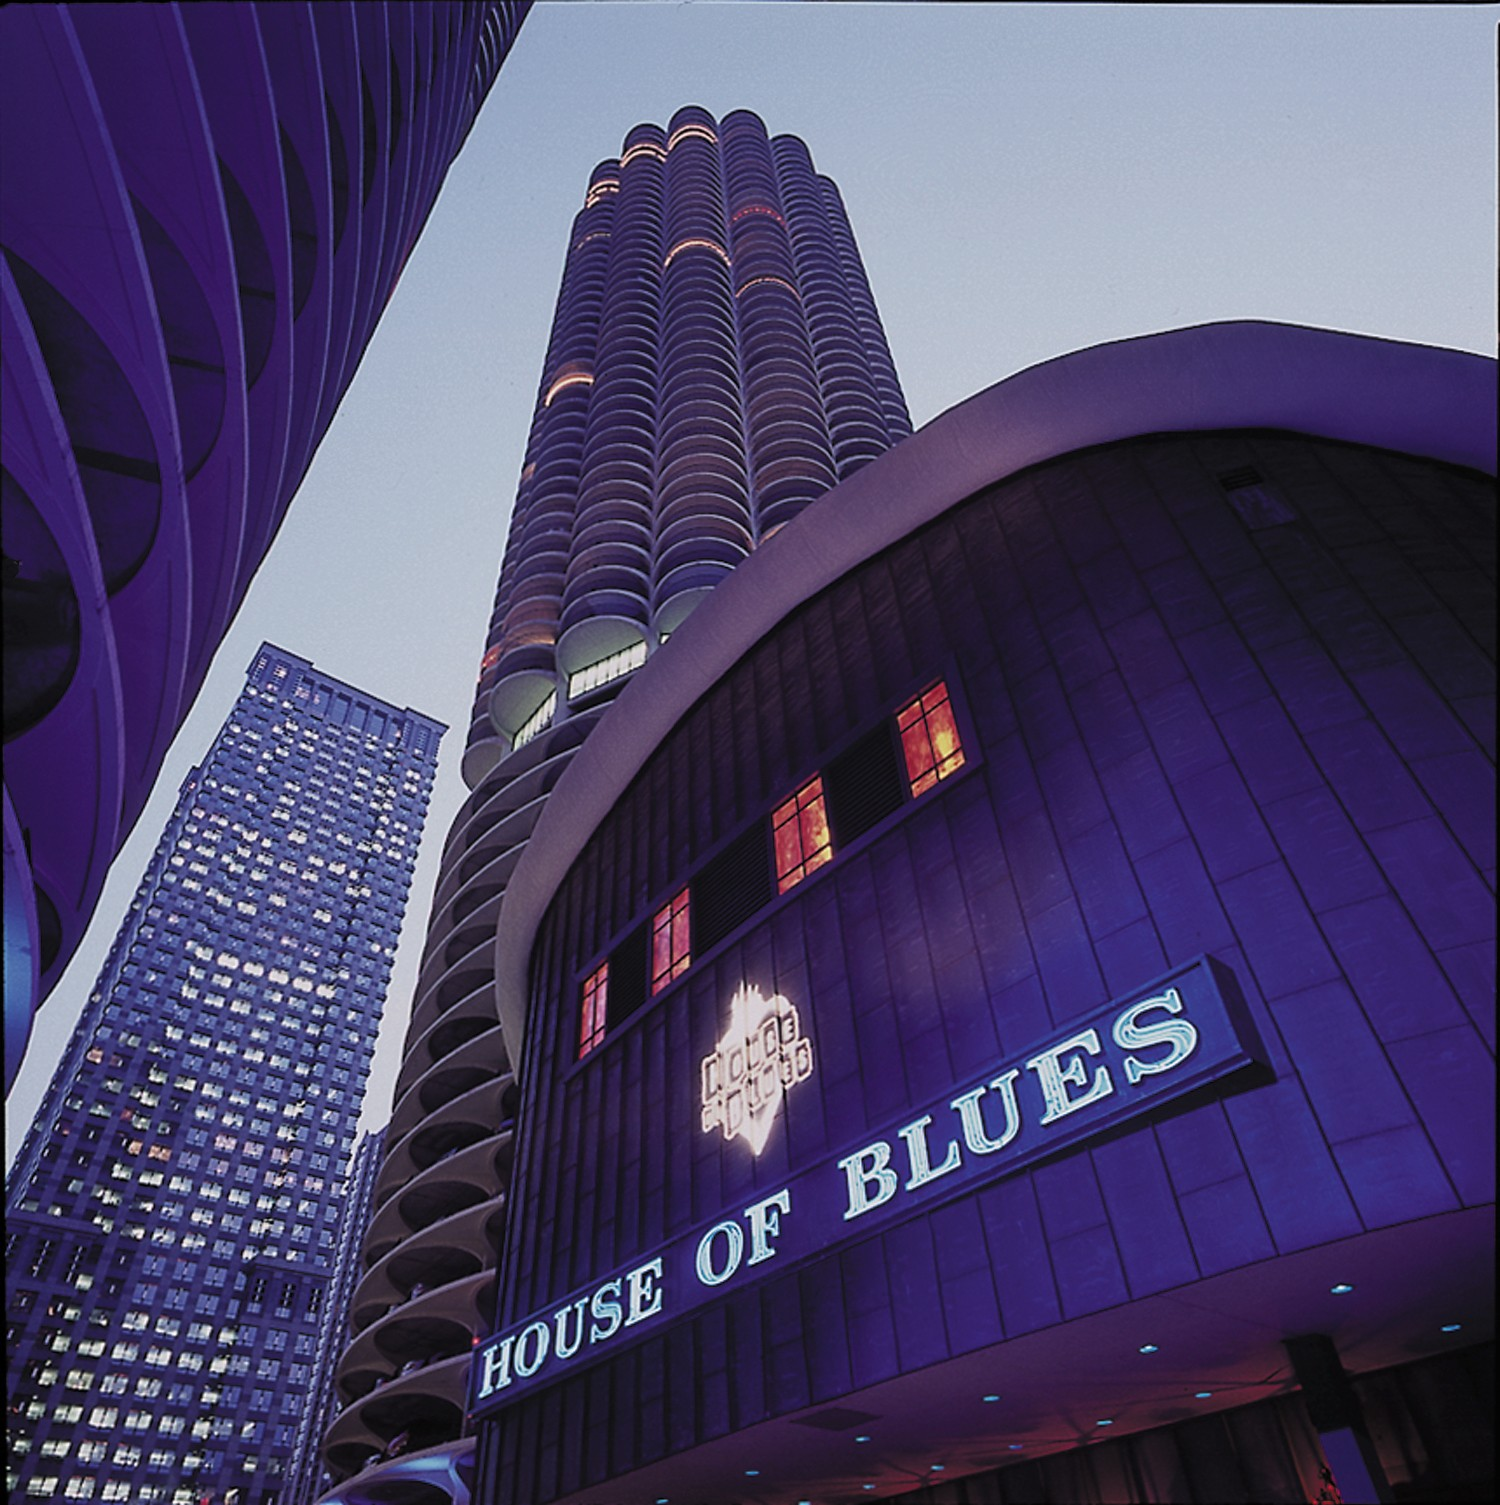 Foundation room at house of blues sites open house chicago for Housse of blues